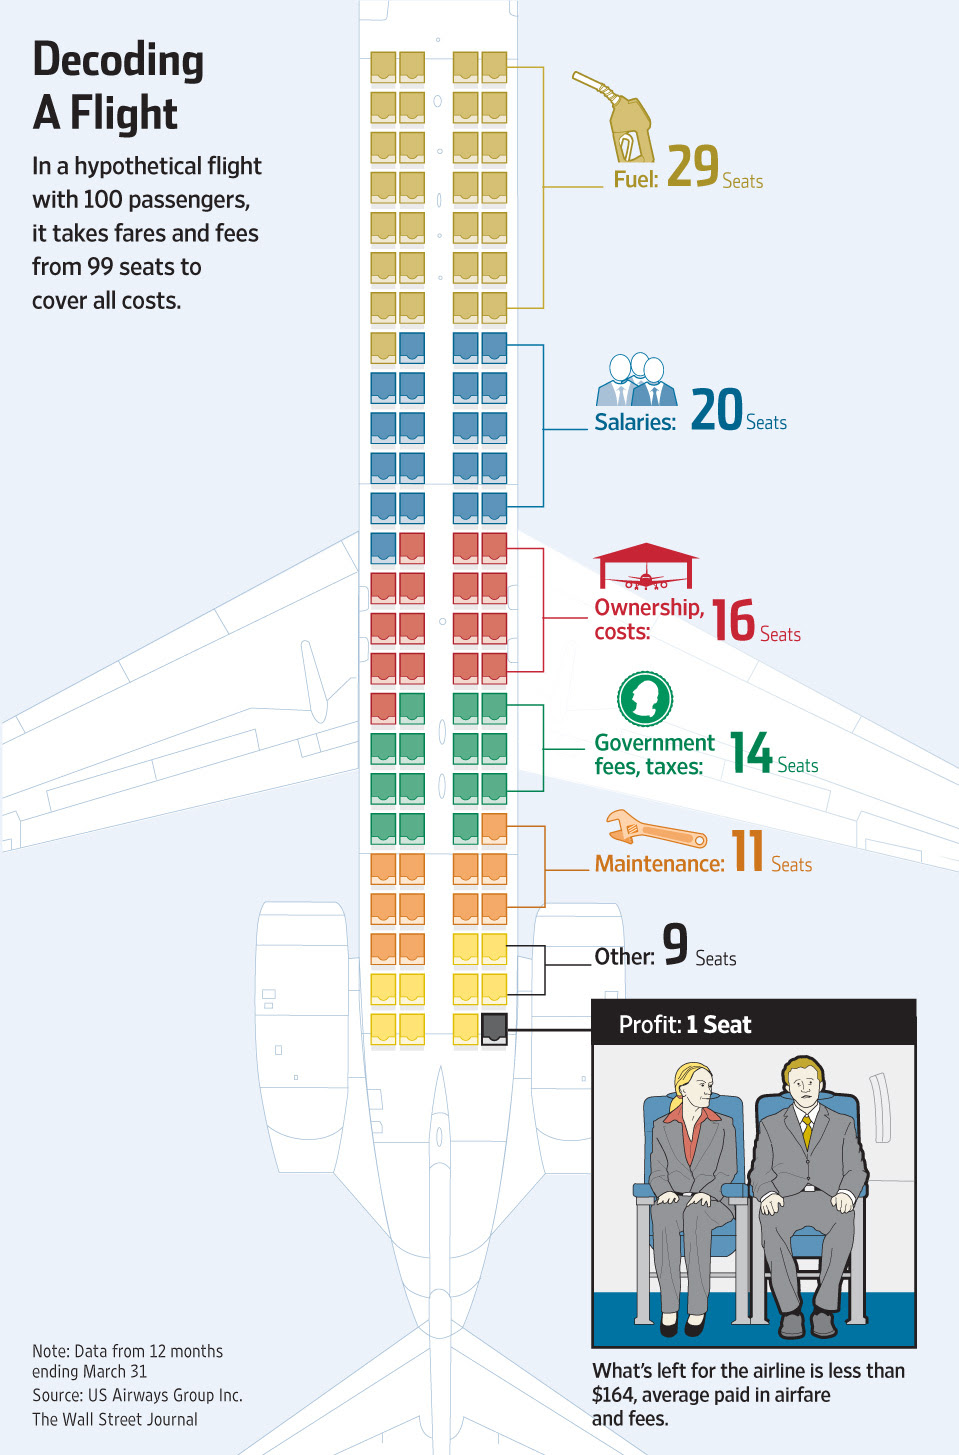 Decoding a Flight